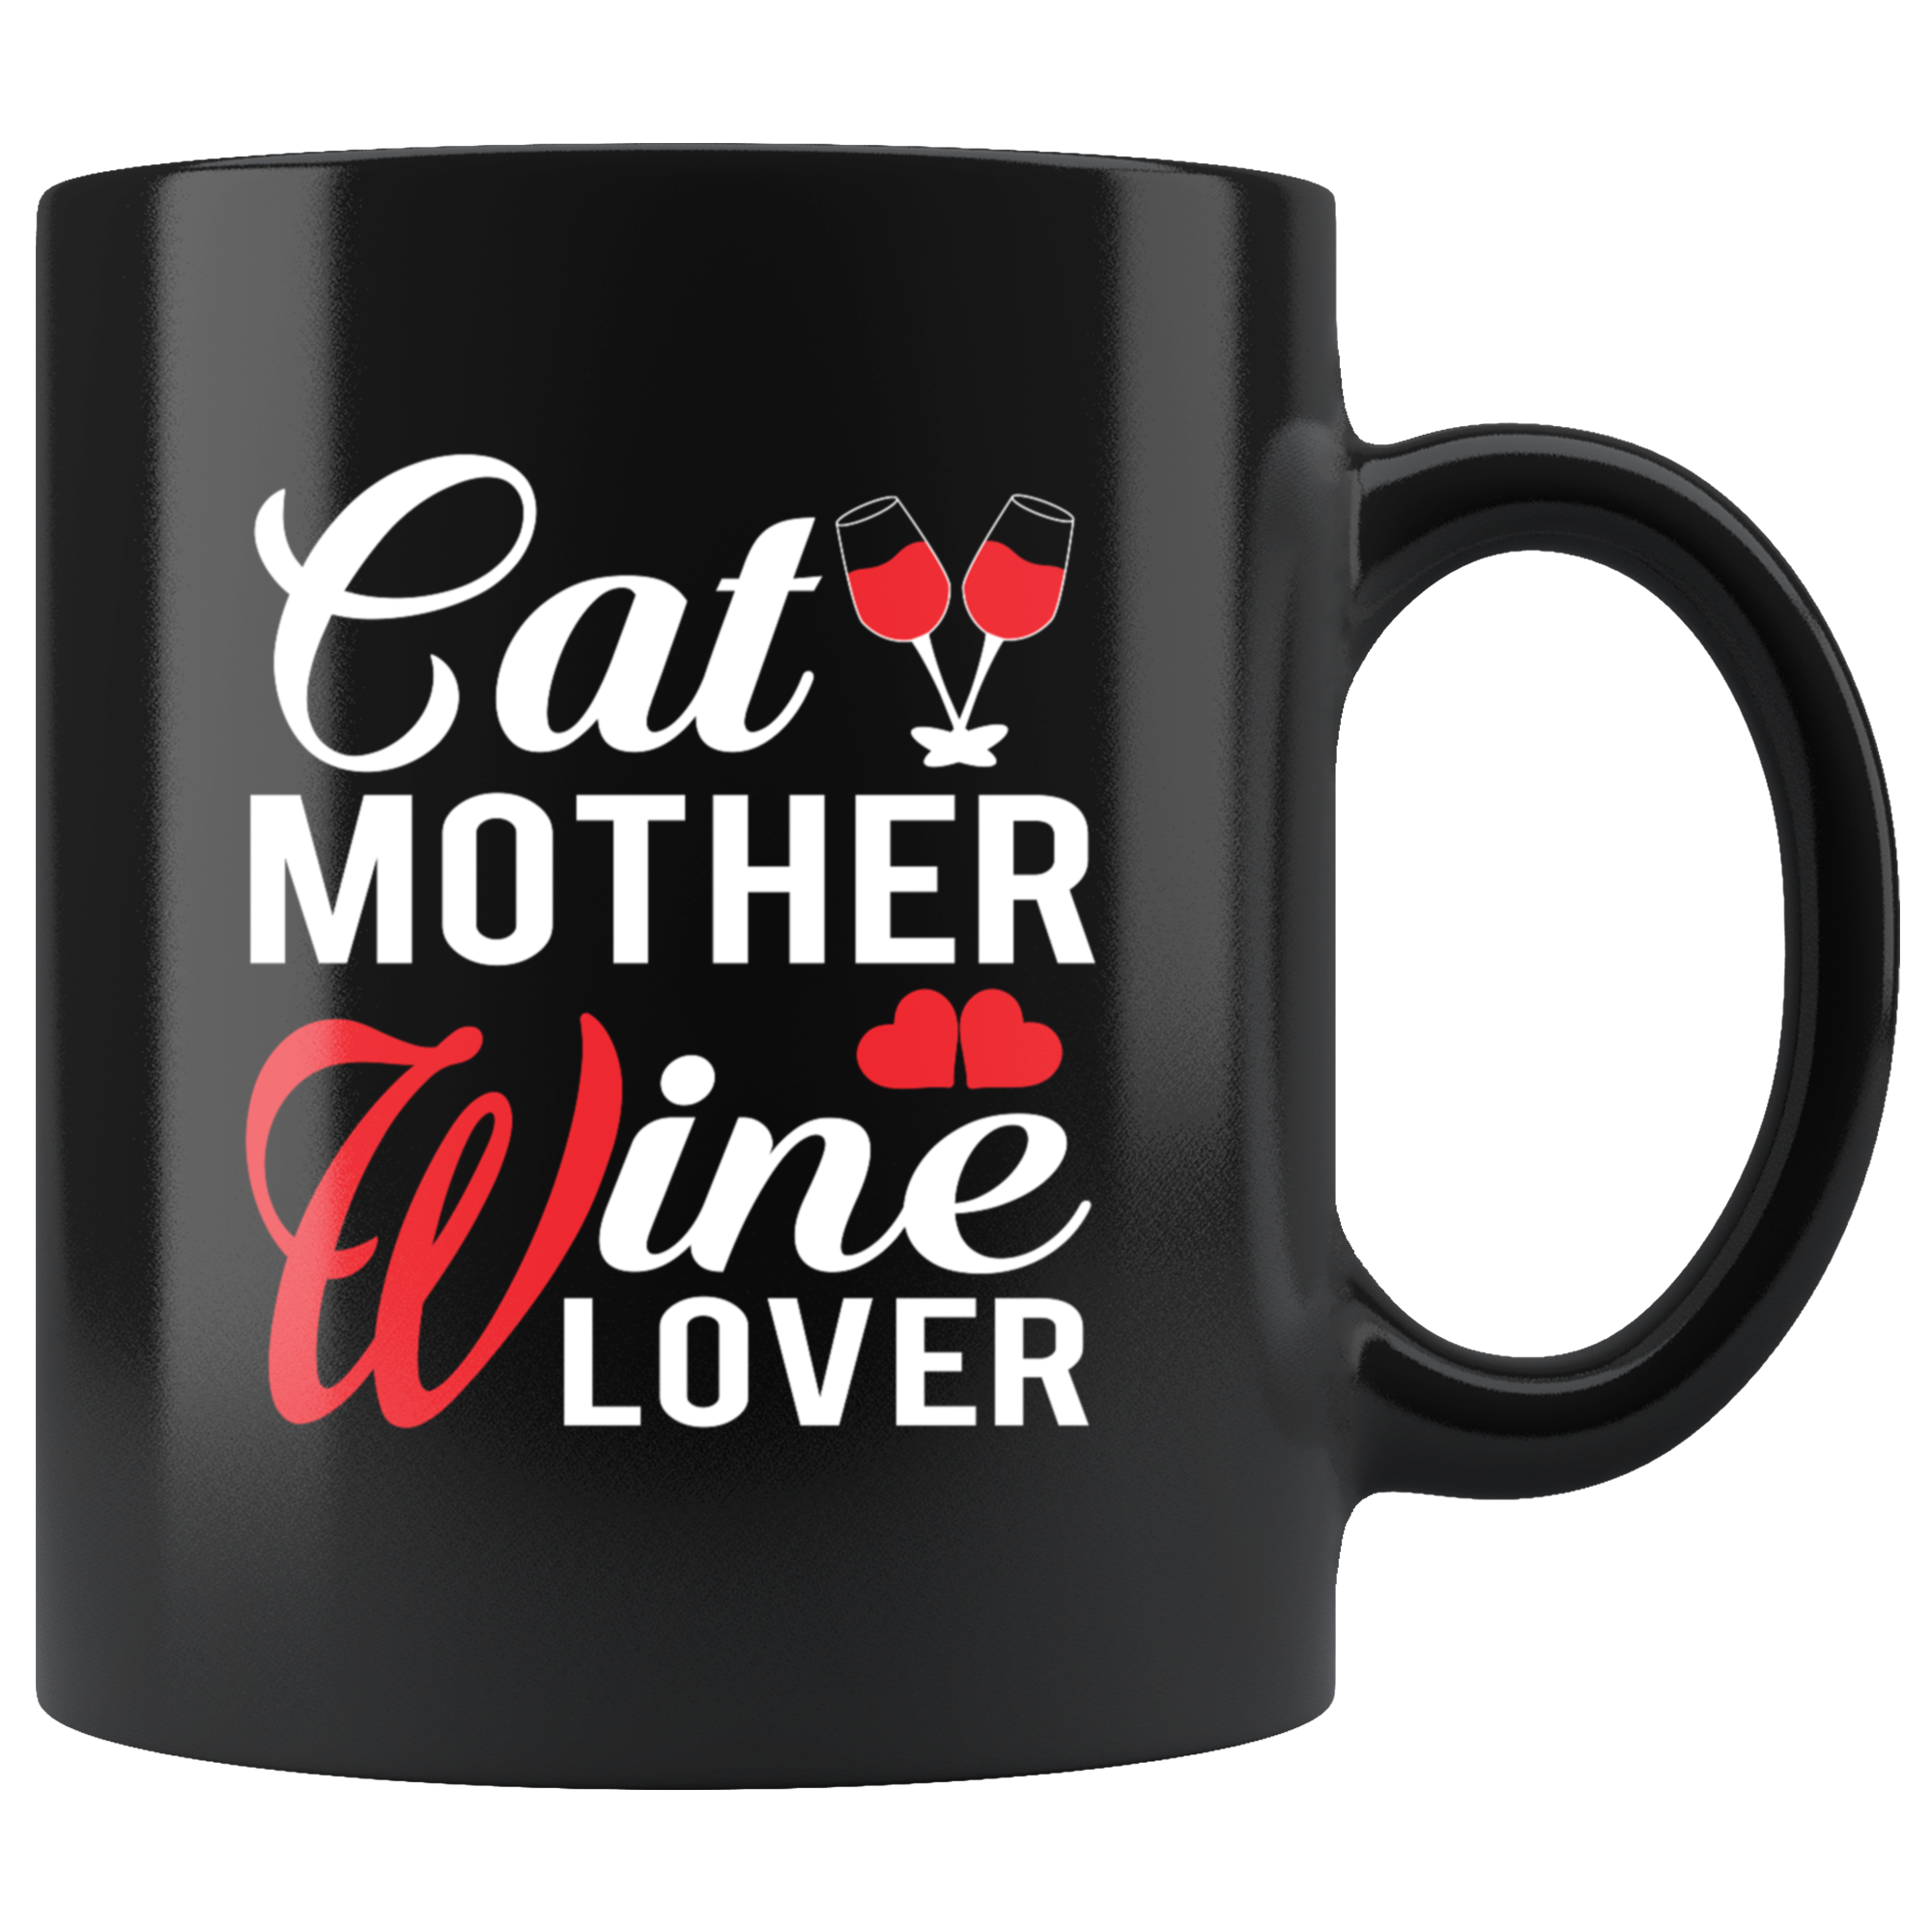 Cat Mother Wine Lover Coffee Mug Funny Gift Idea For